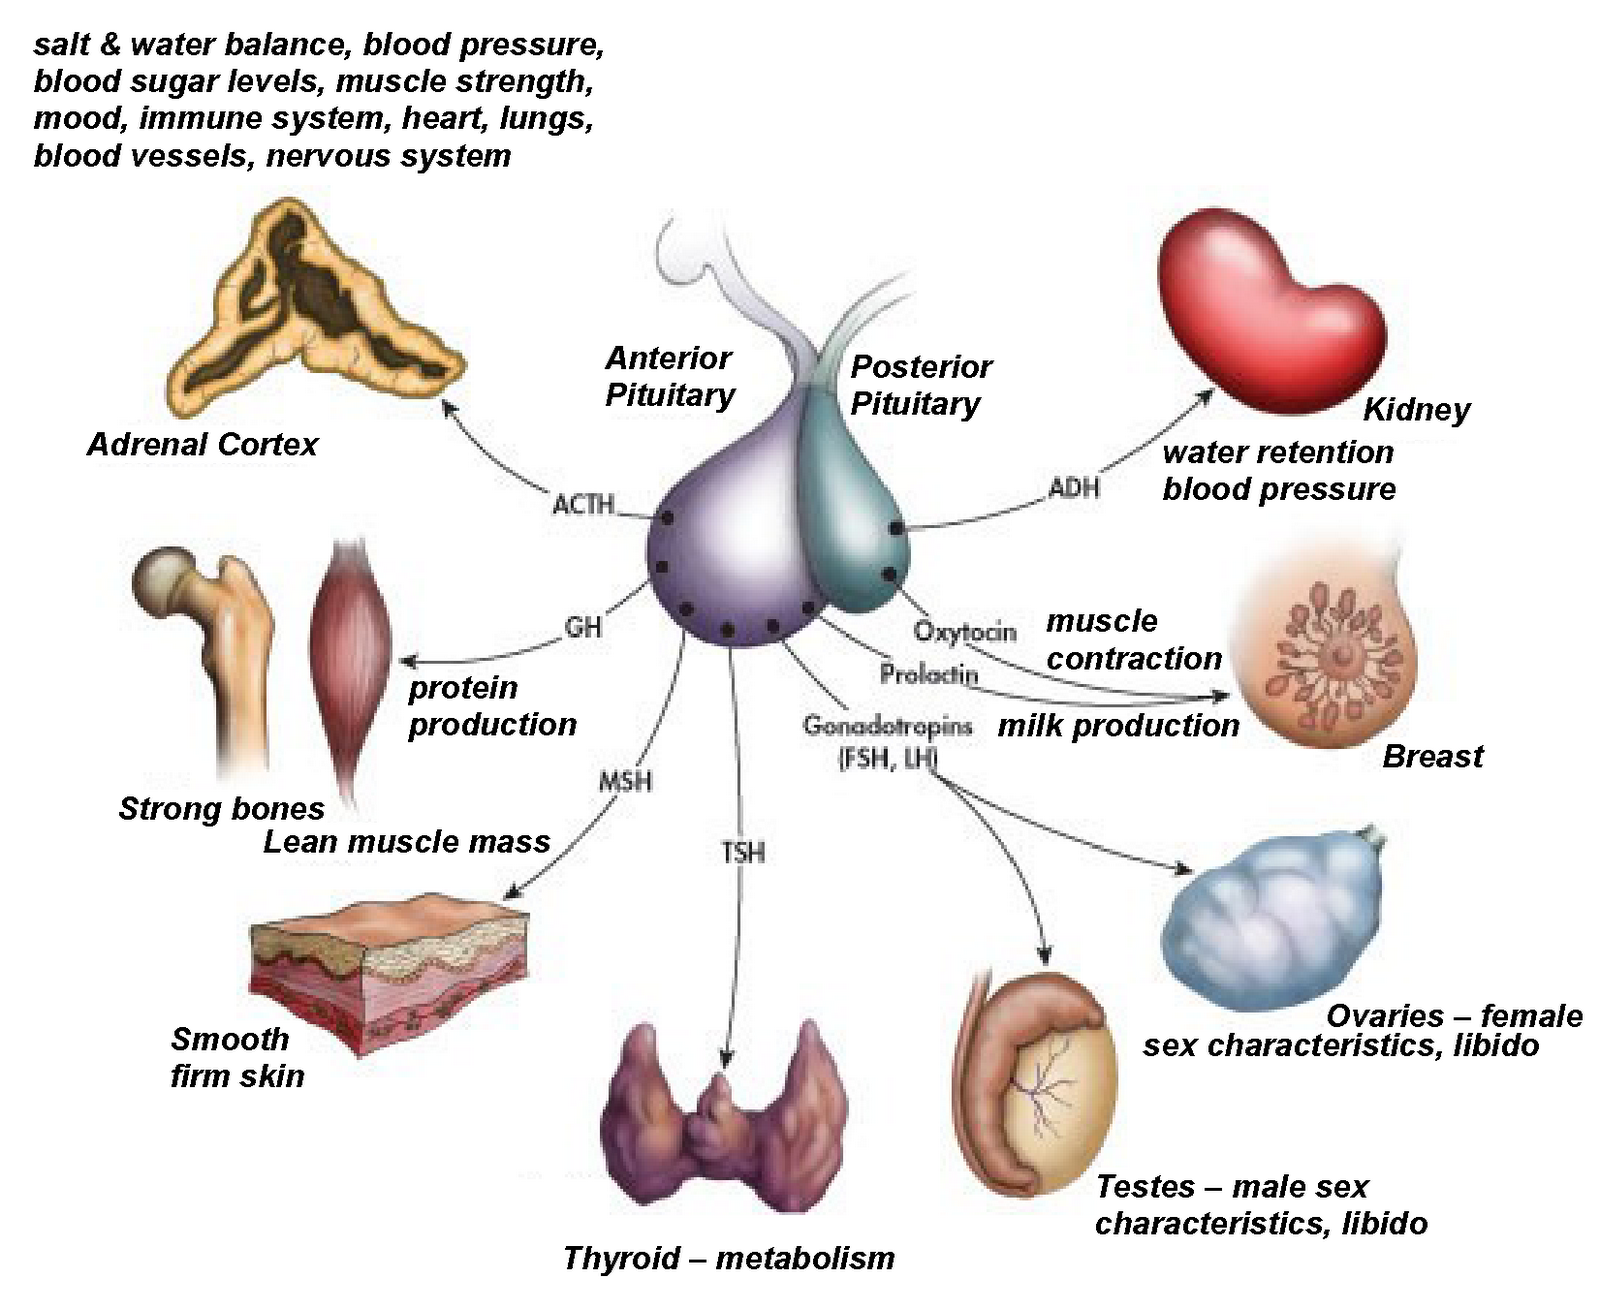 Endocrine System In Humans